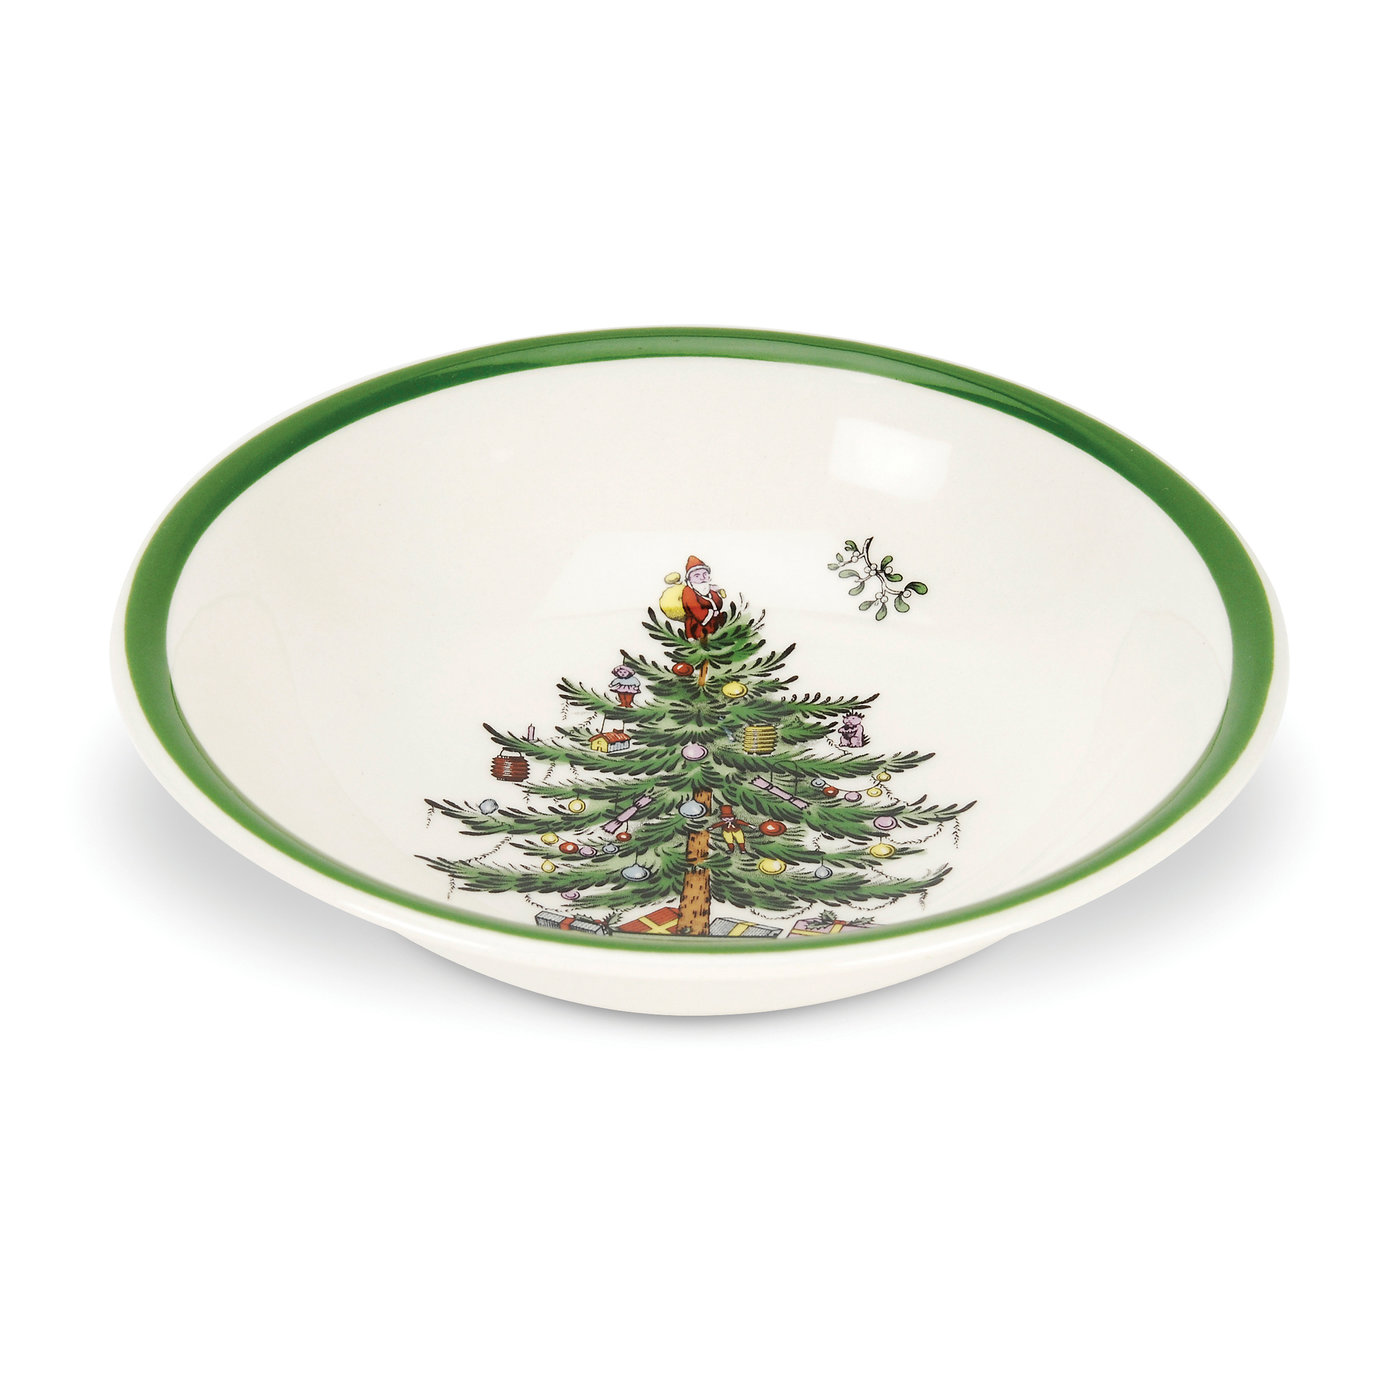 Spode Christmas Tree Set of 4 Cereal/Oatmeal Bowls image number 0